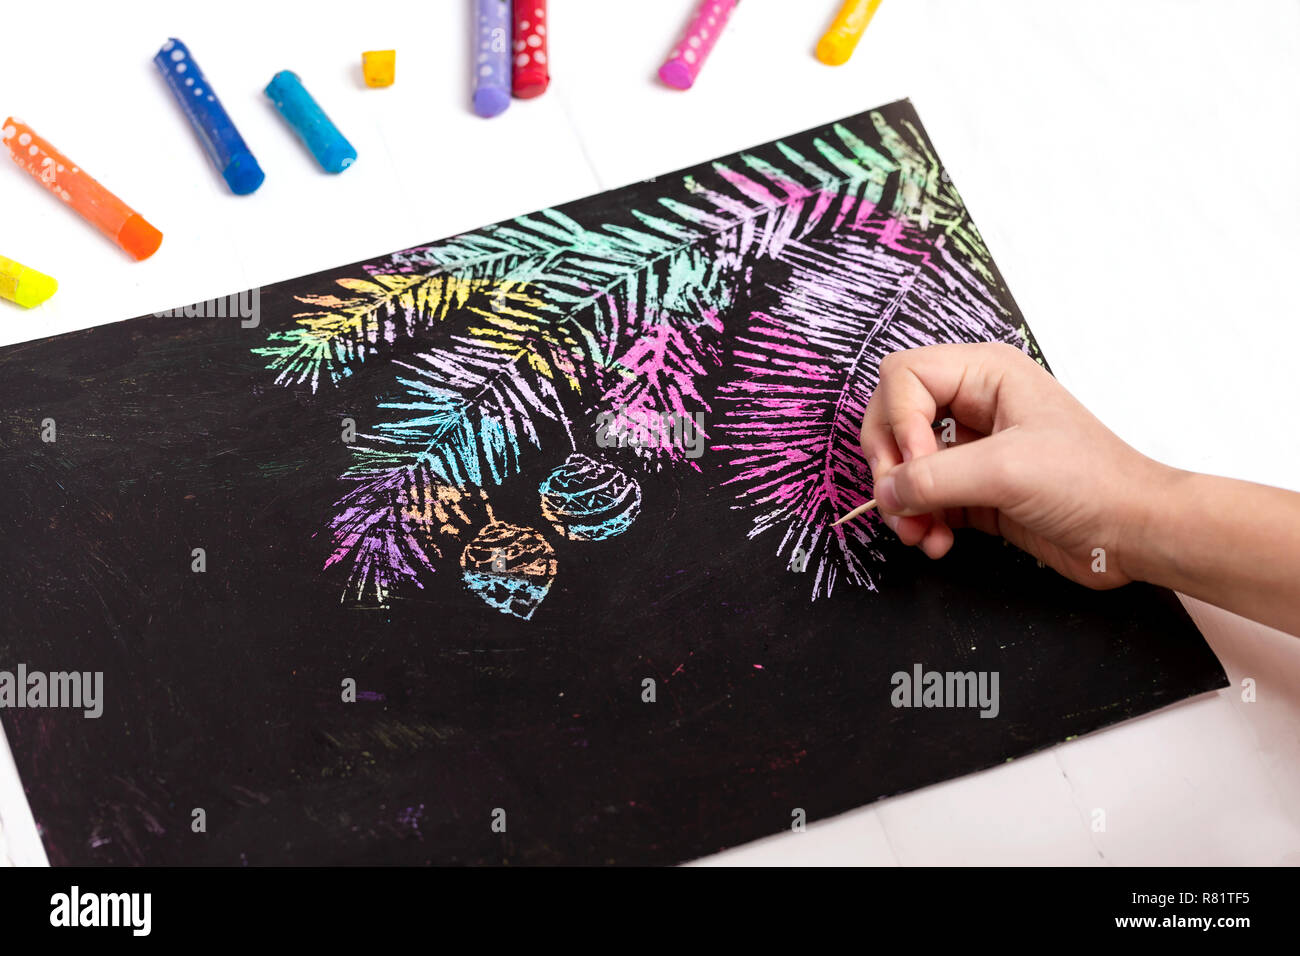 The child draws a pine branch with Christmas toys on a black background. - Stock Image